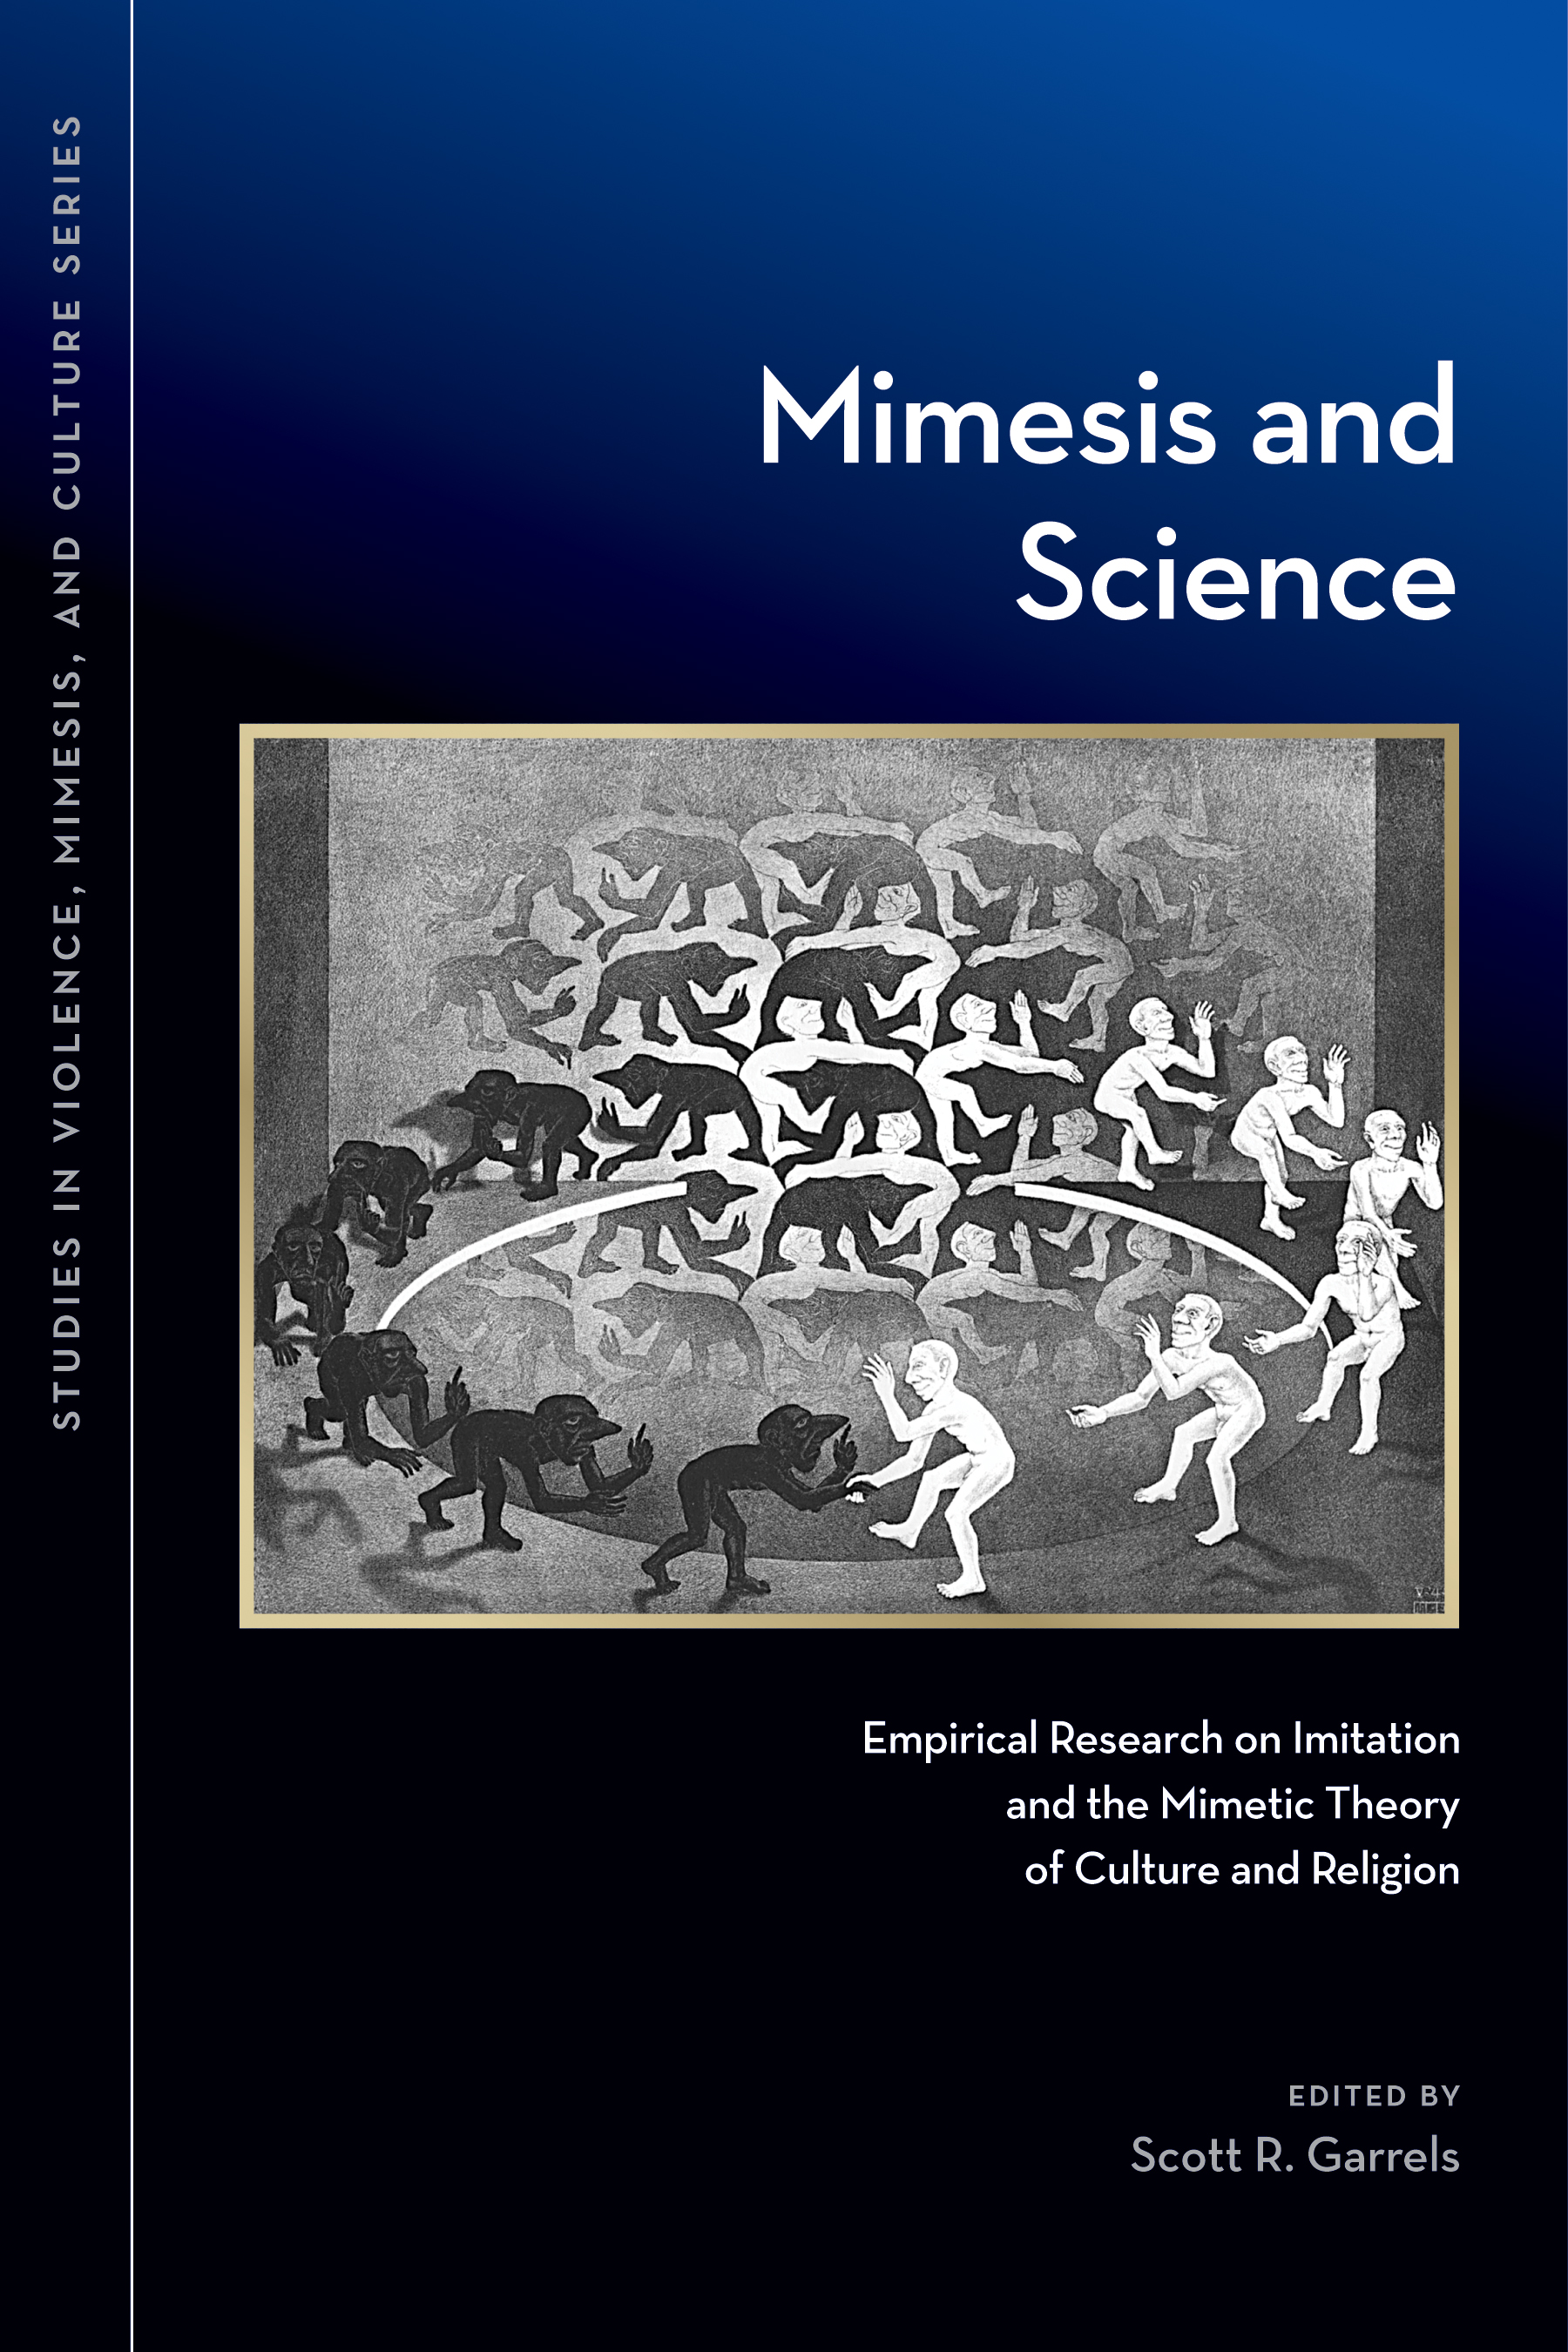 theory of mimesis We shall try to understand the role and place given to 'the critic' in the field of literary criticism in his theory of mimesis.